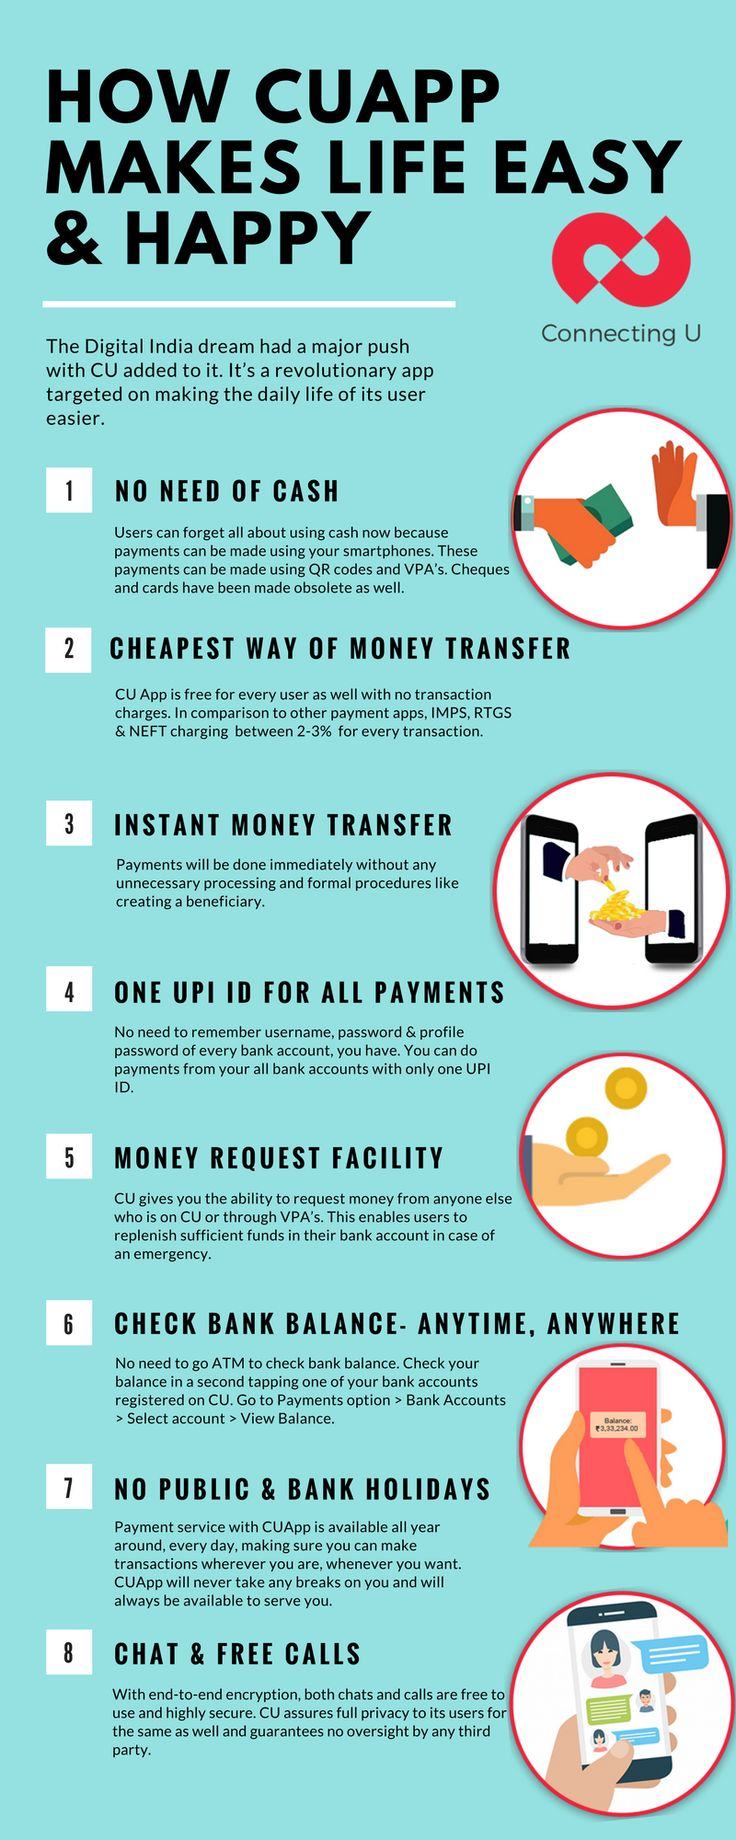 CU is wonderful app committed to providing the very best in payments and chatting options to the user. Following through with the Digital India vision, it's emphasis is on making the daily life of the user easier.